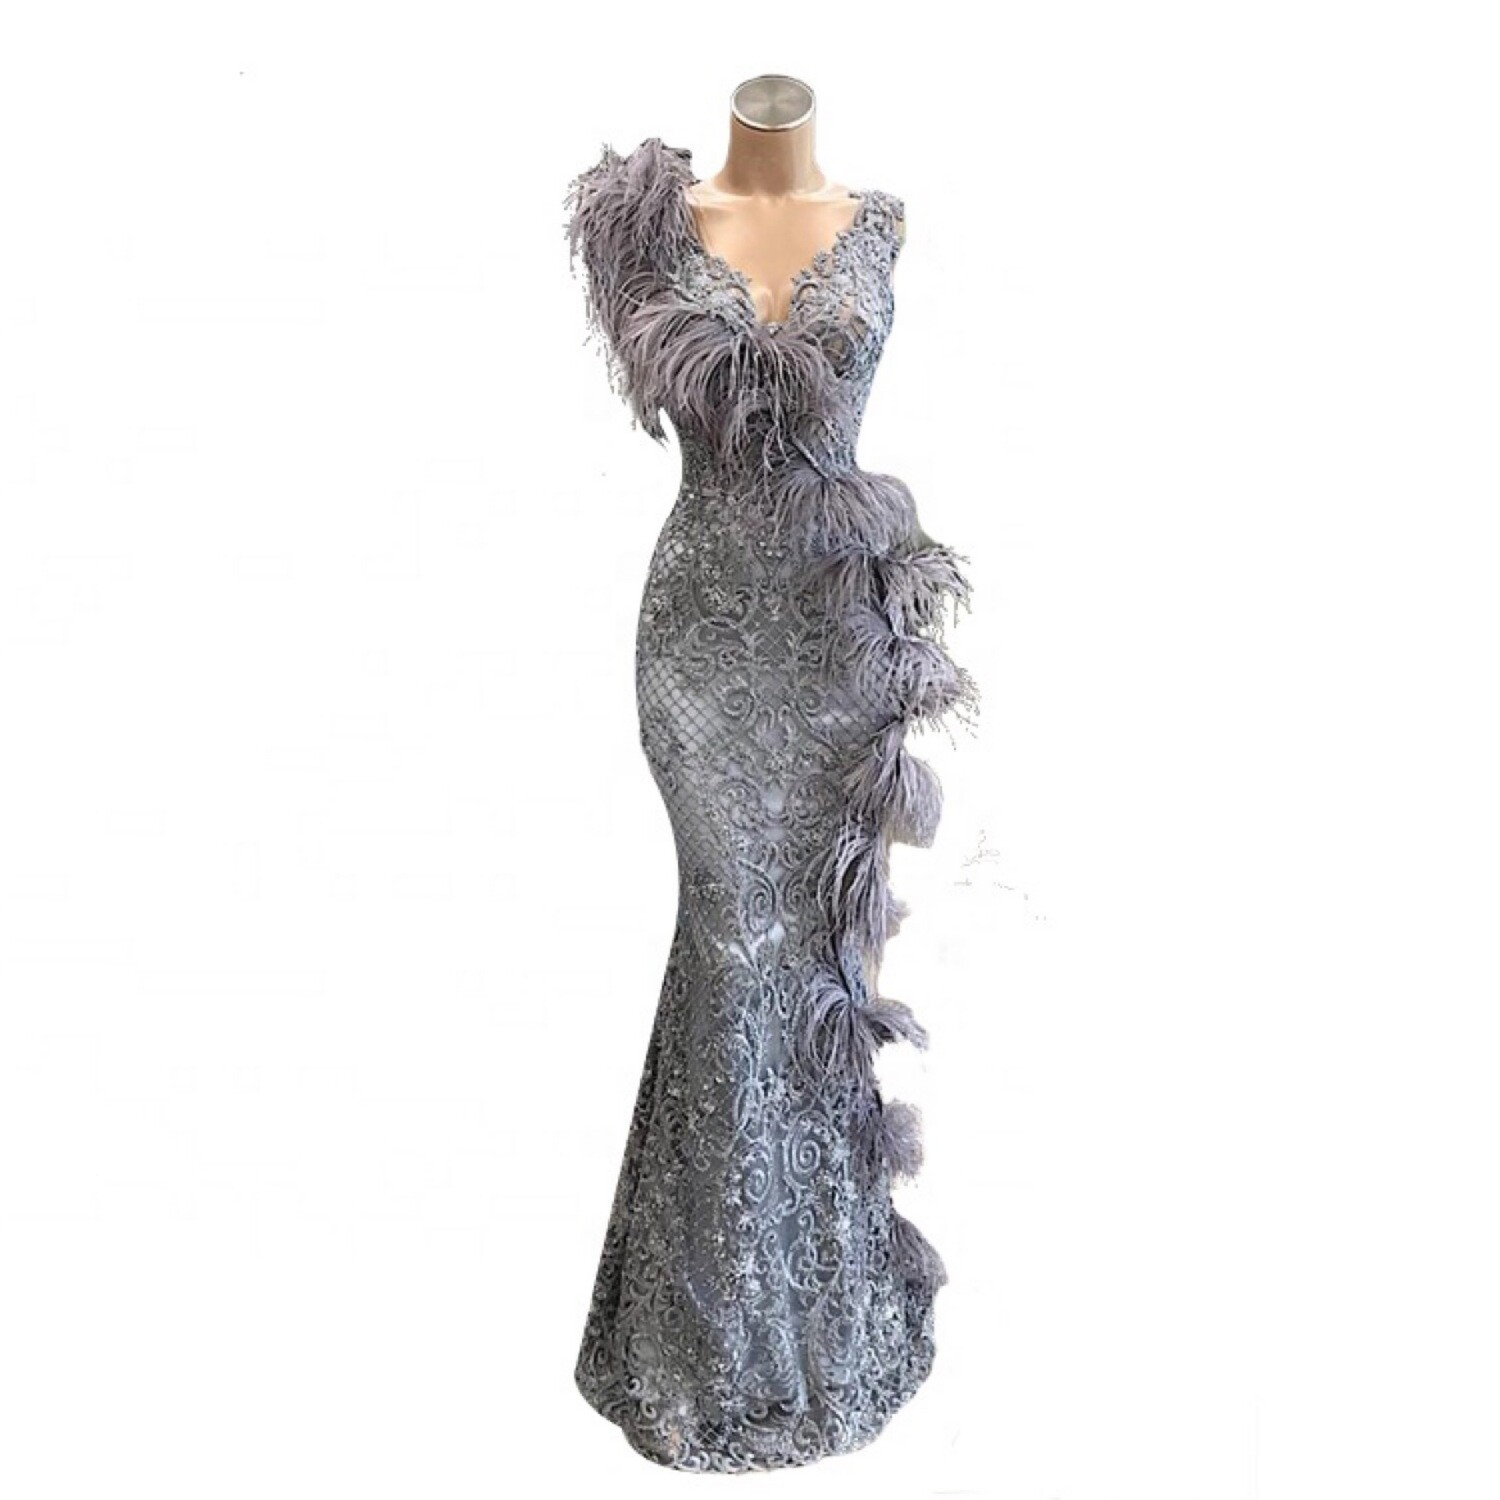 Lisa T Ostrich Feather Evening Gown